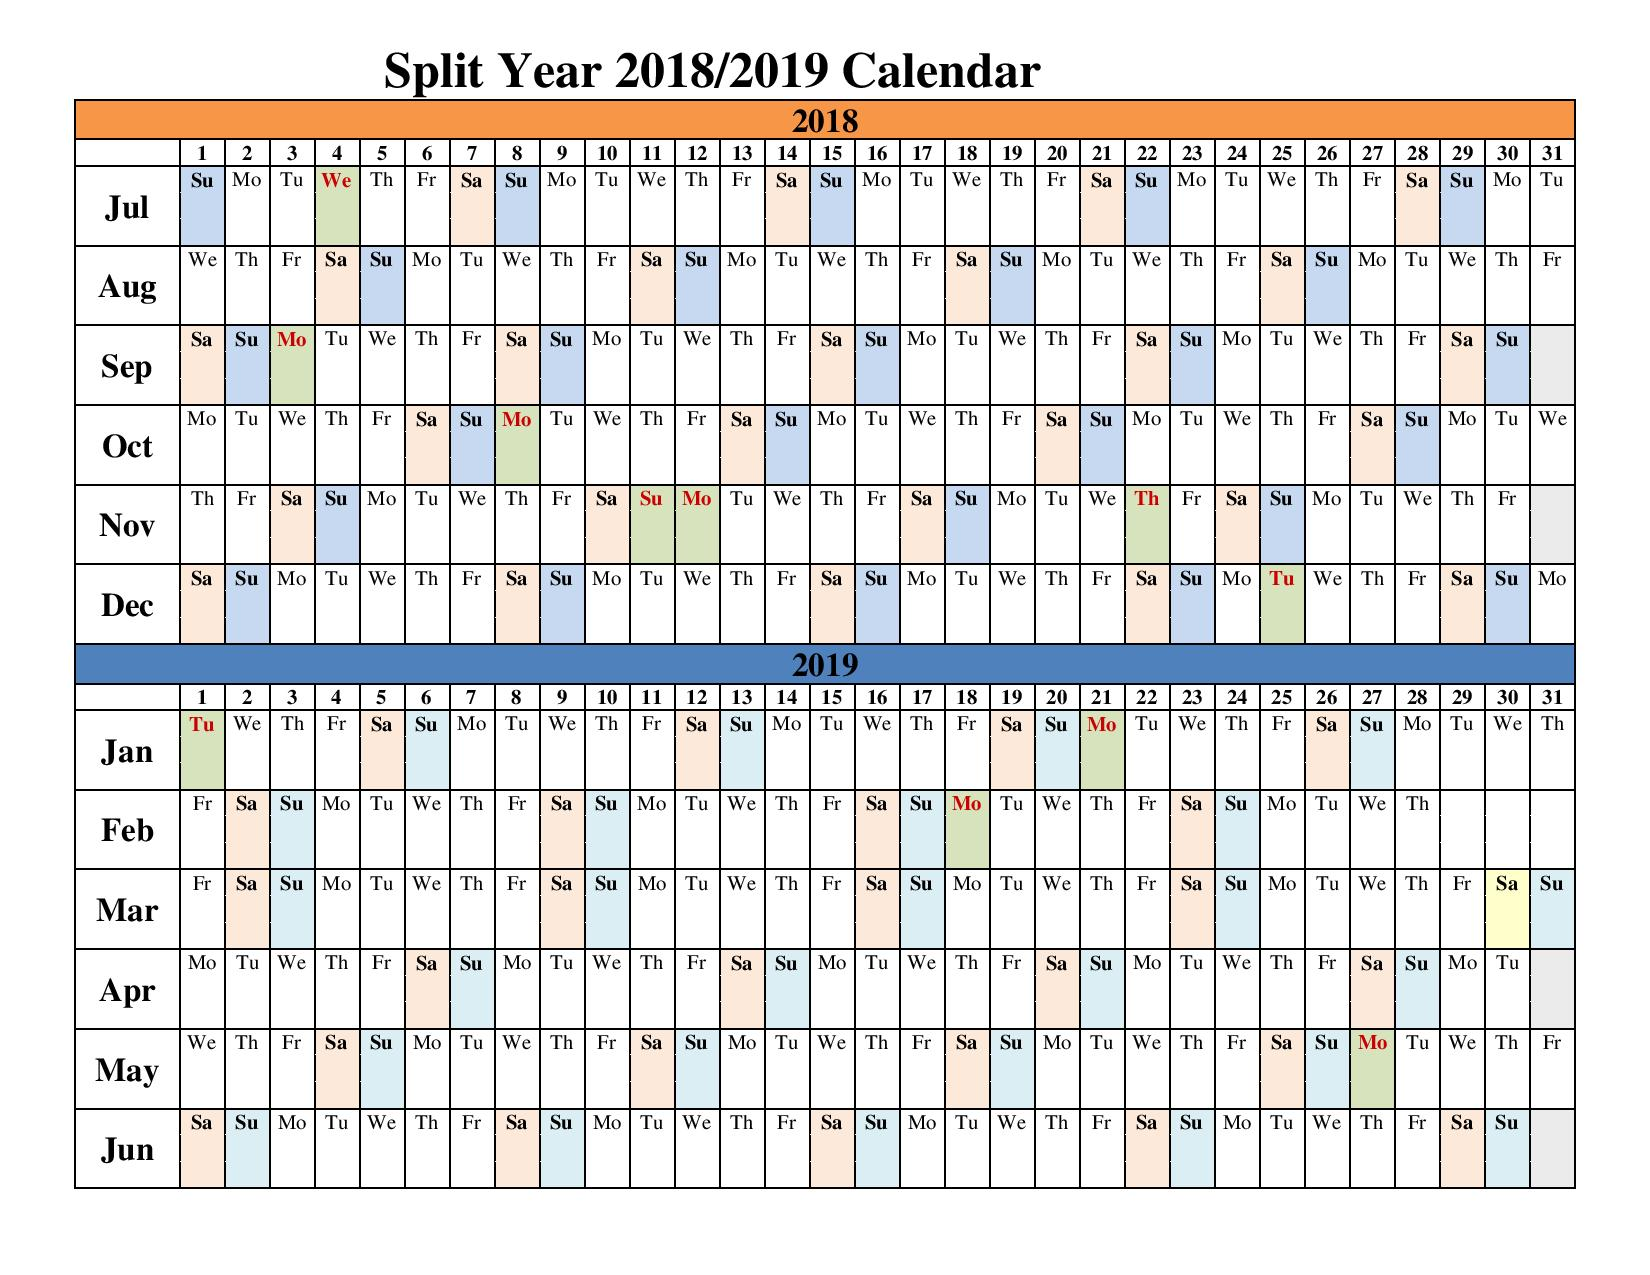 2018 And 2019 Year Calendar Printable With Split Calendars Blank Templates Office